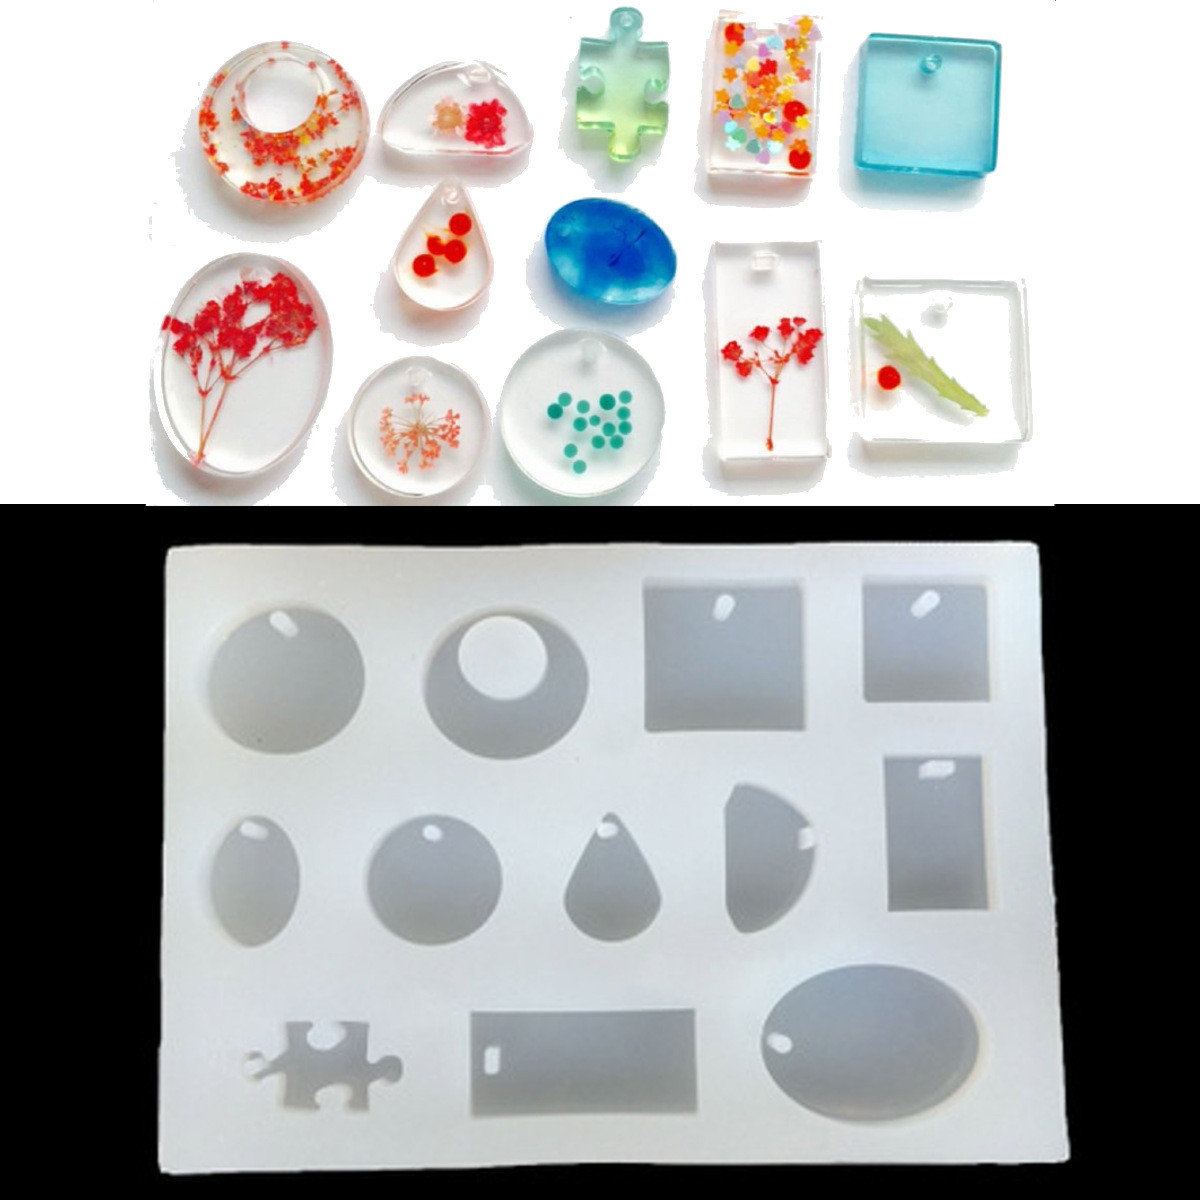 12 Mold Models Silicone Mold Resin DIY Pendant Jewelry Tools Accessories